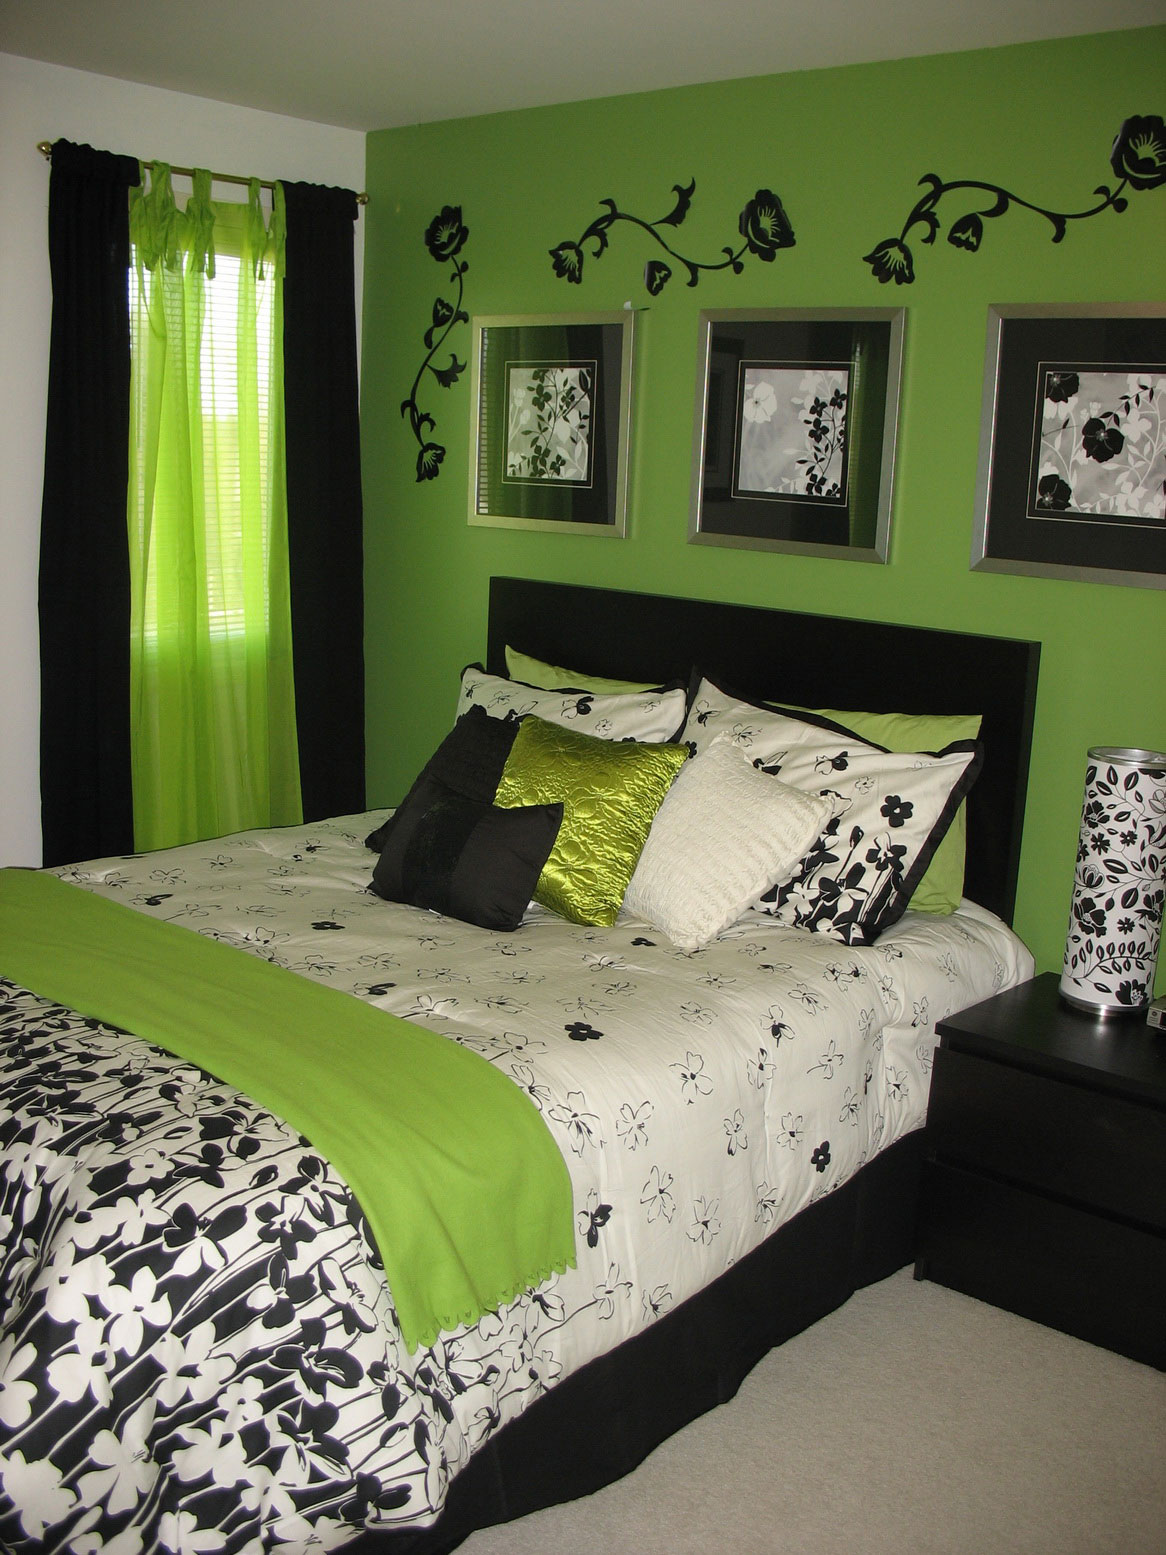 Green and Black Bedroom Wall Ideas